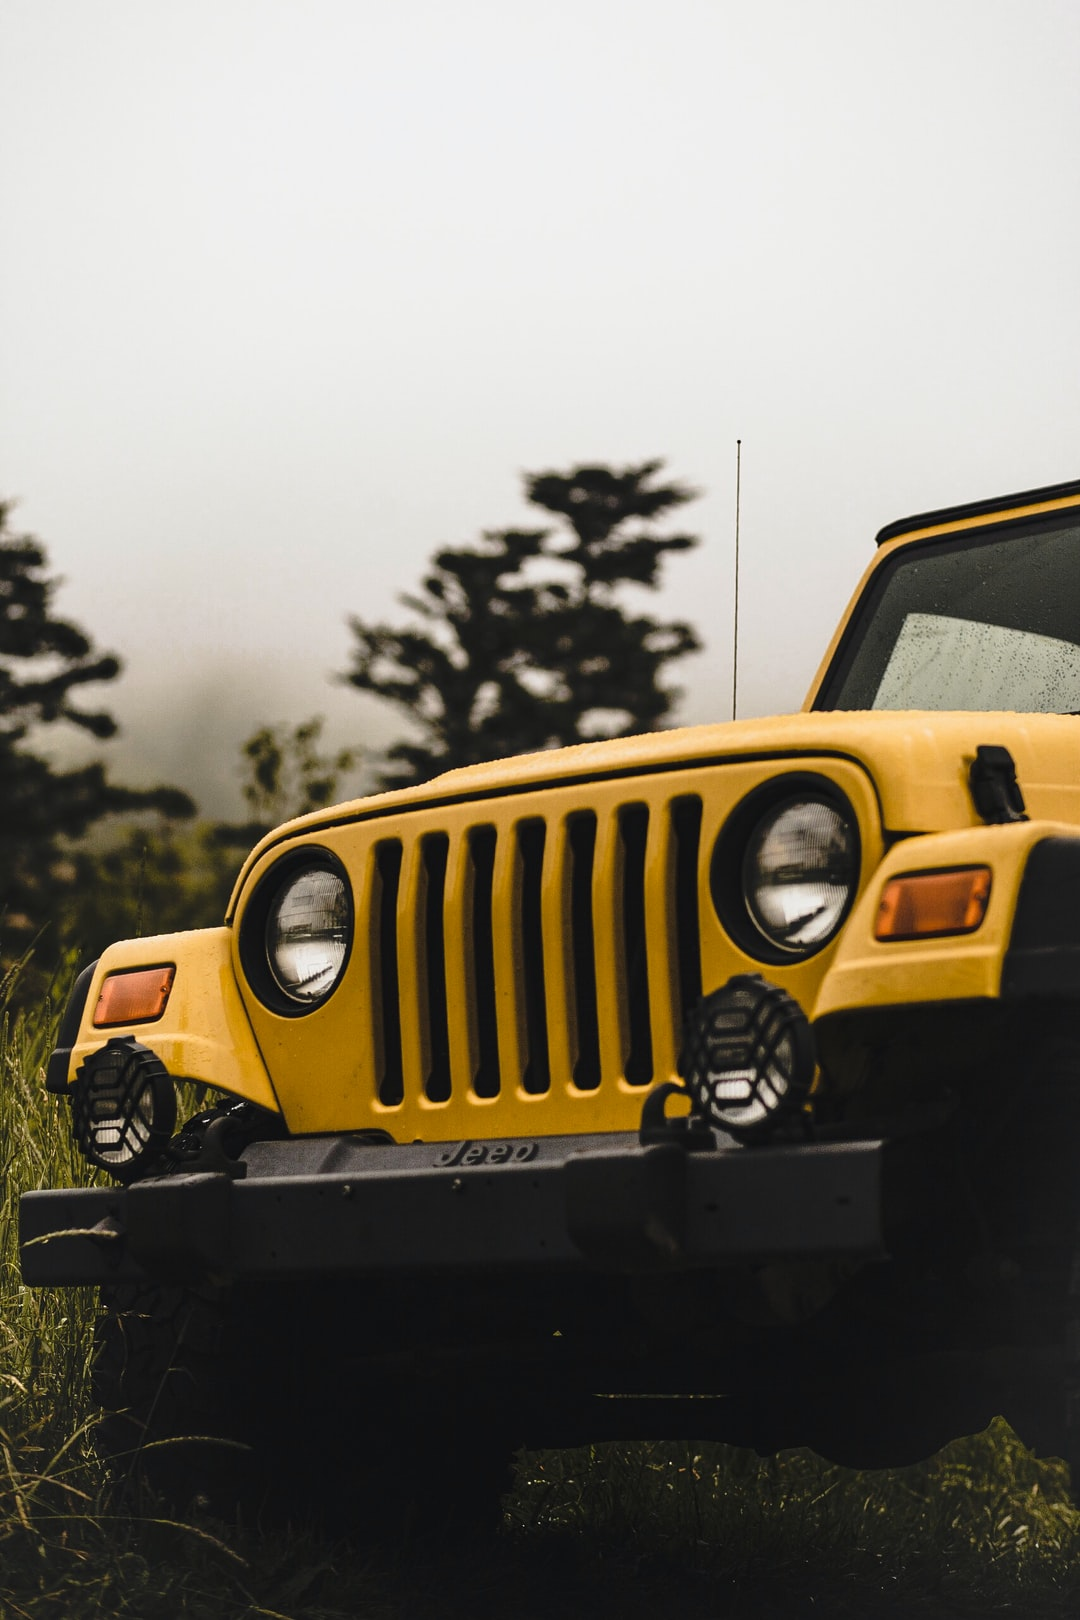 Jeep Pictures Hd Download Free Images Stock Photos On Unsplash Revo Fit Raving Red Brebes